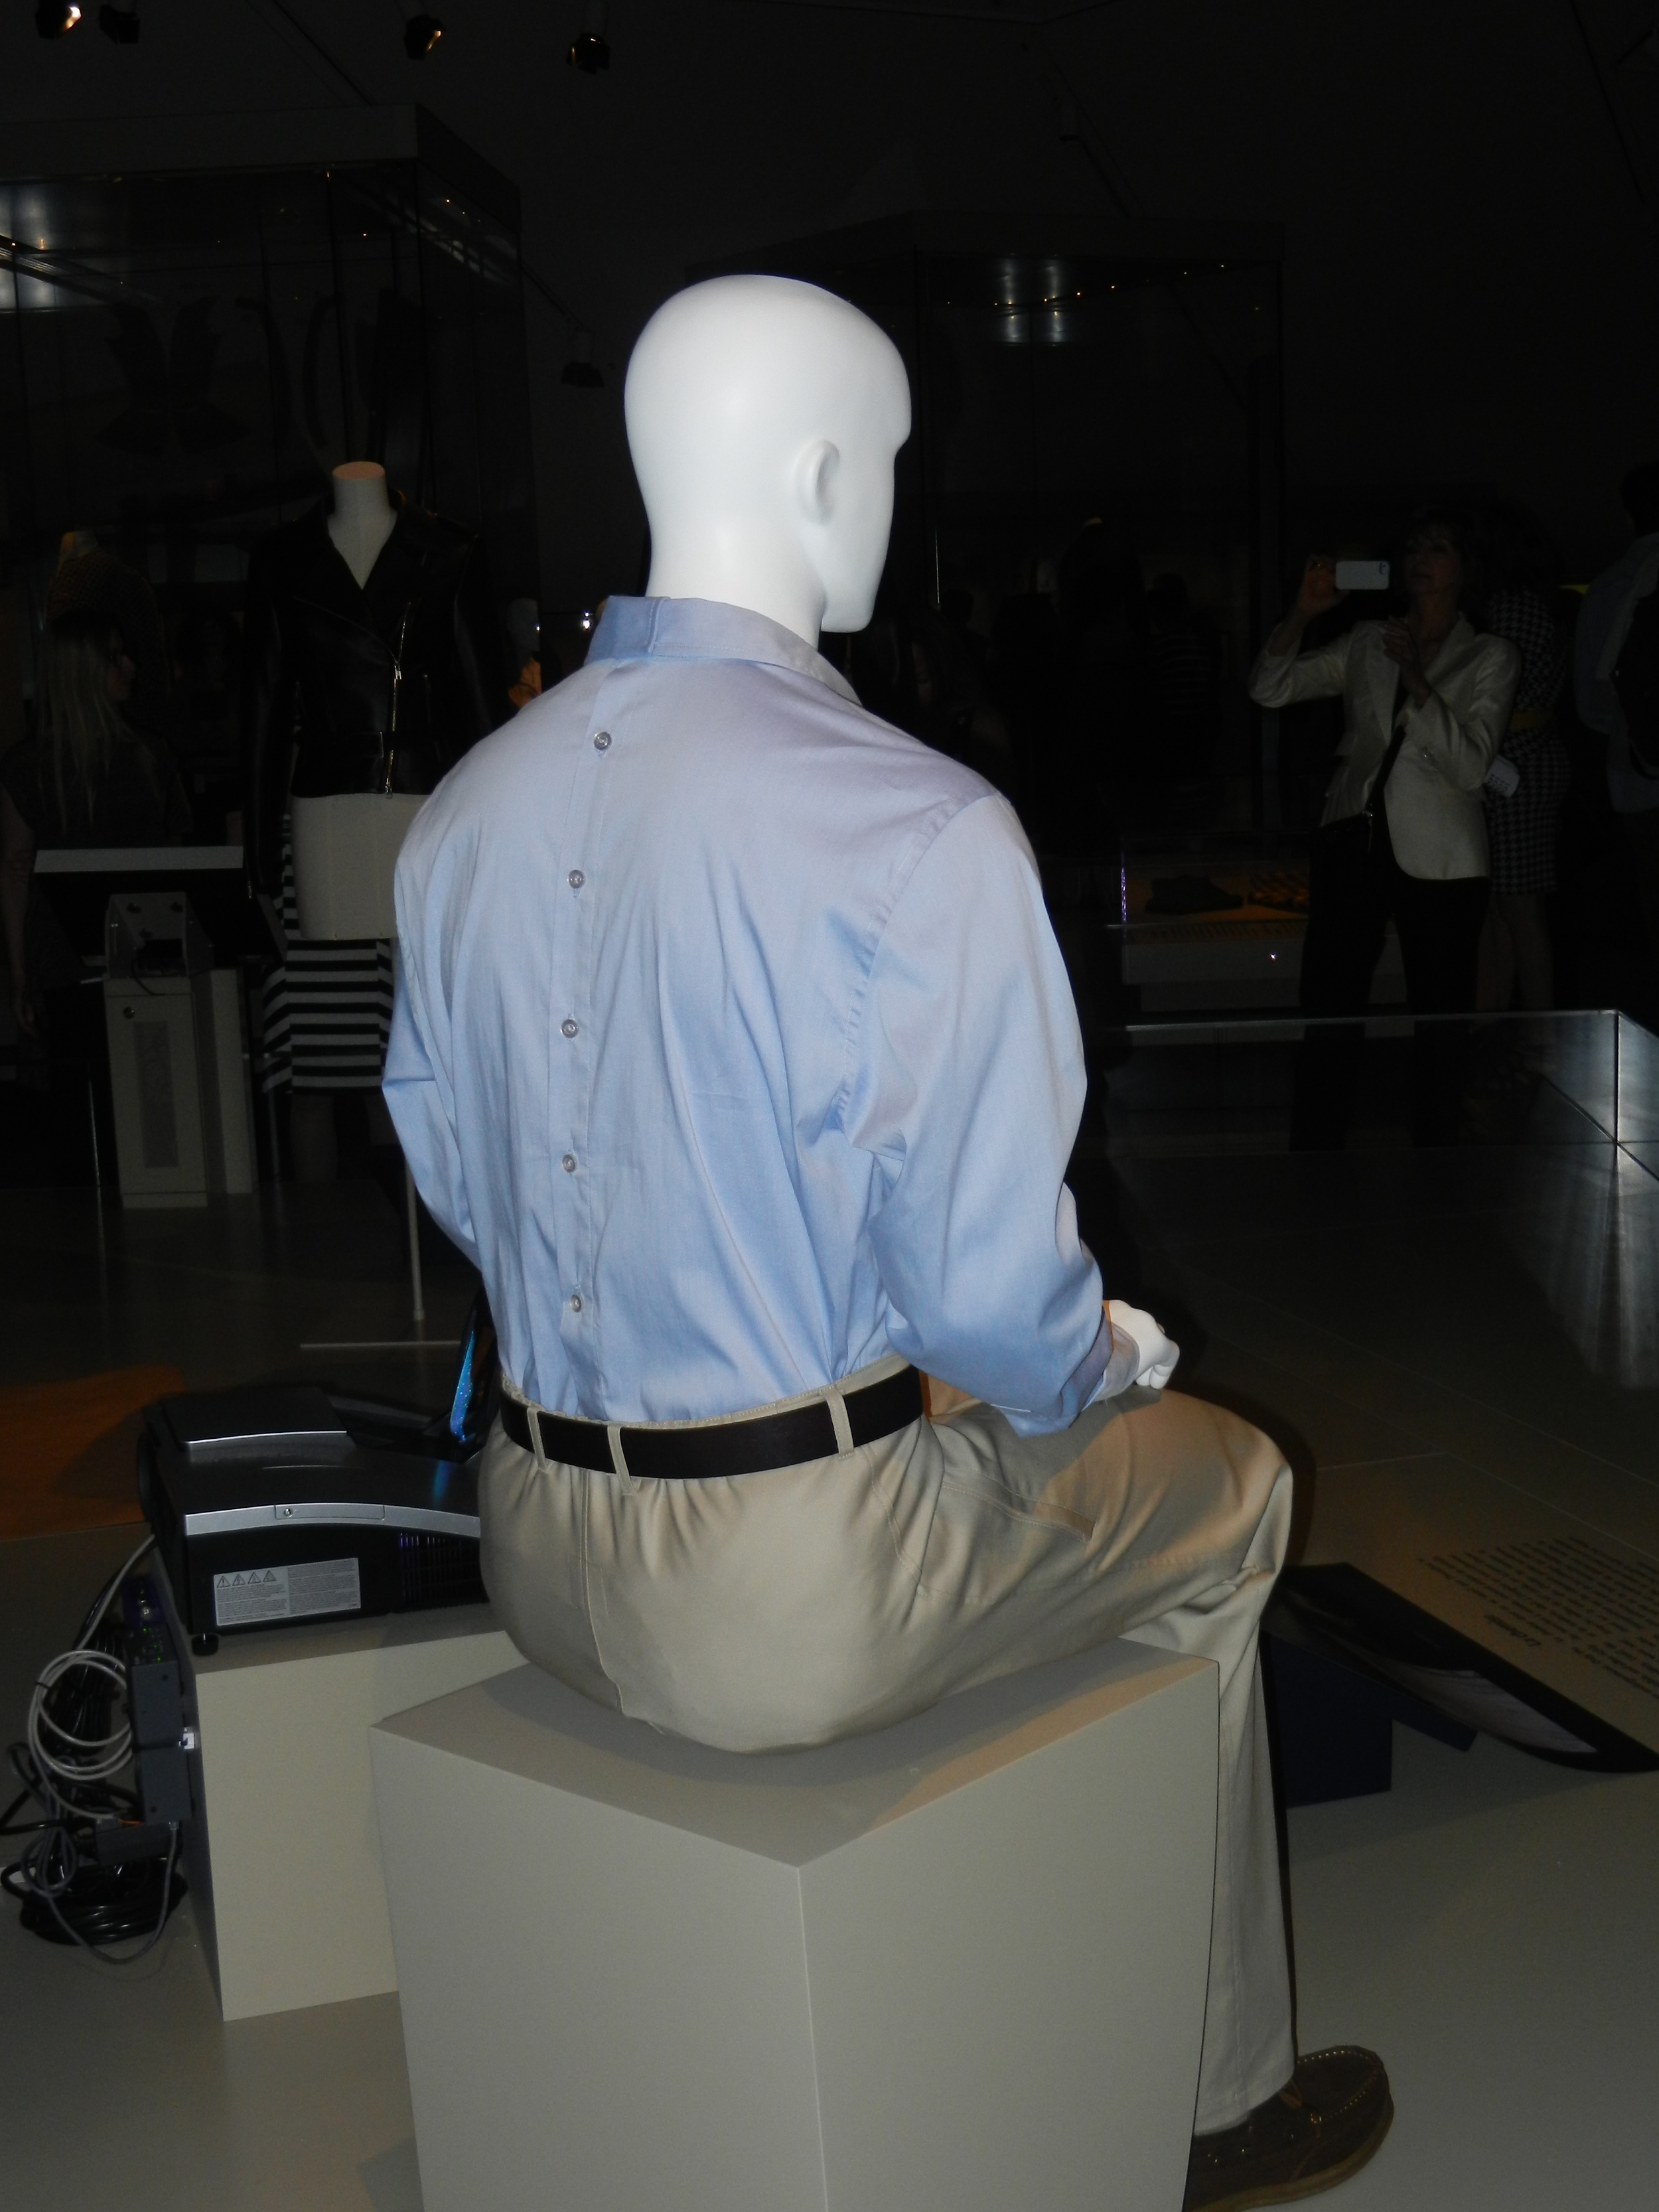 Picture of mannequin in blue shirt sitting down.